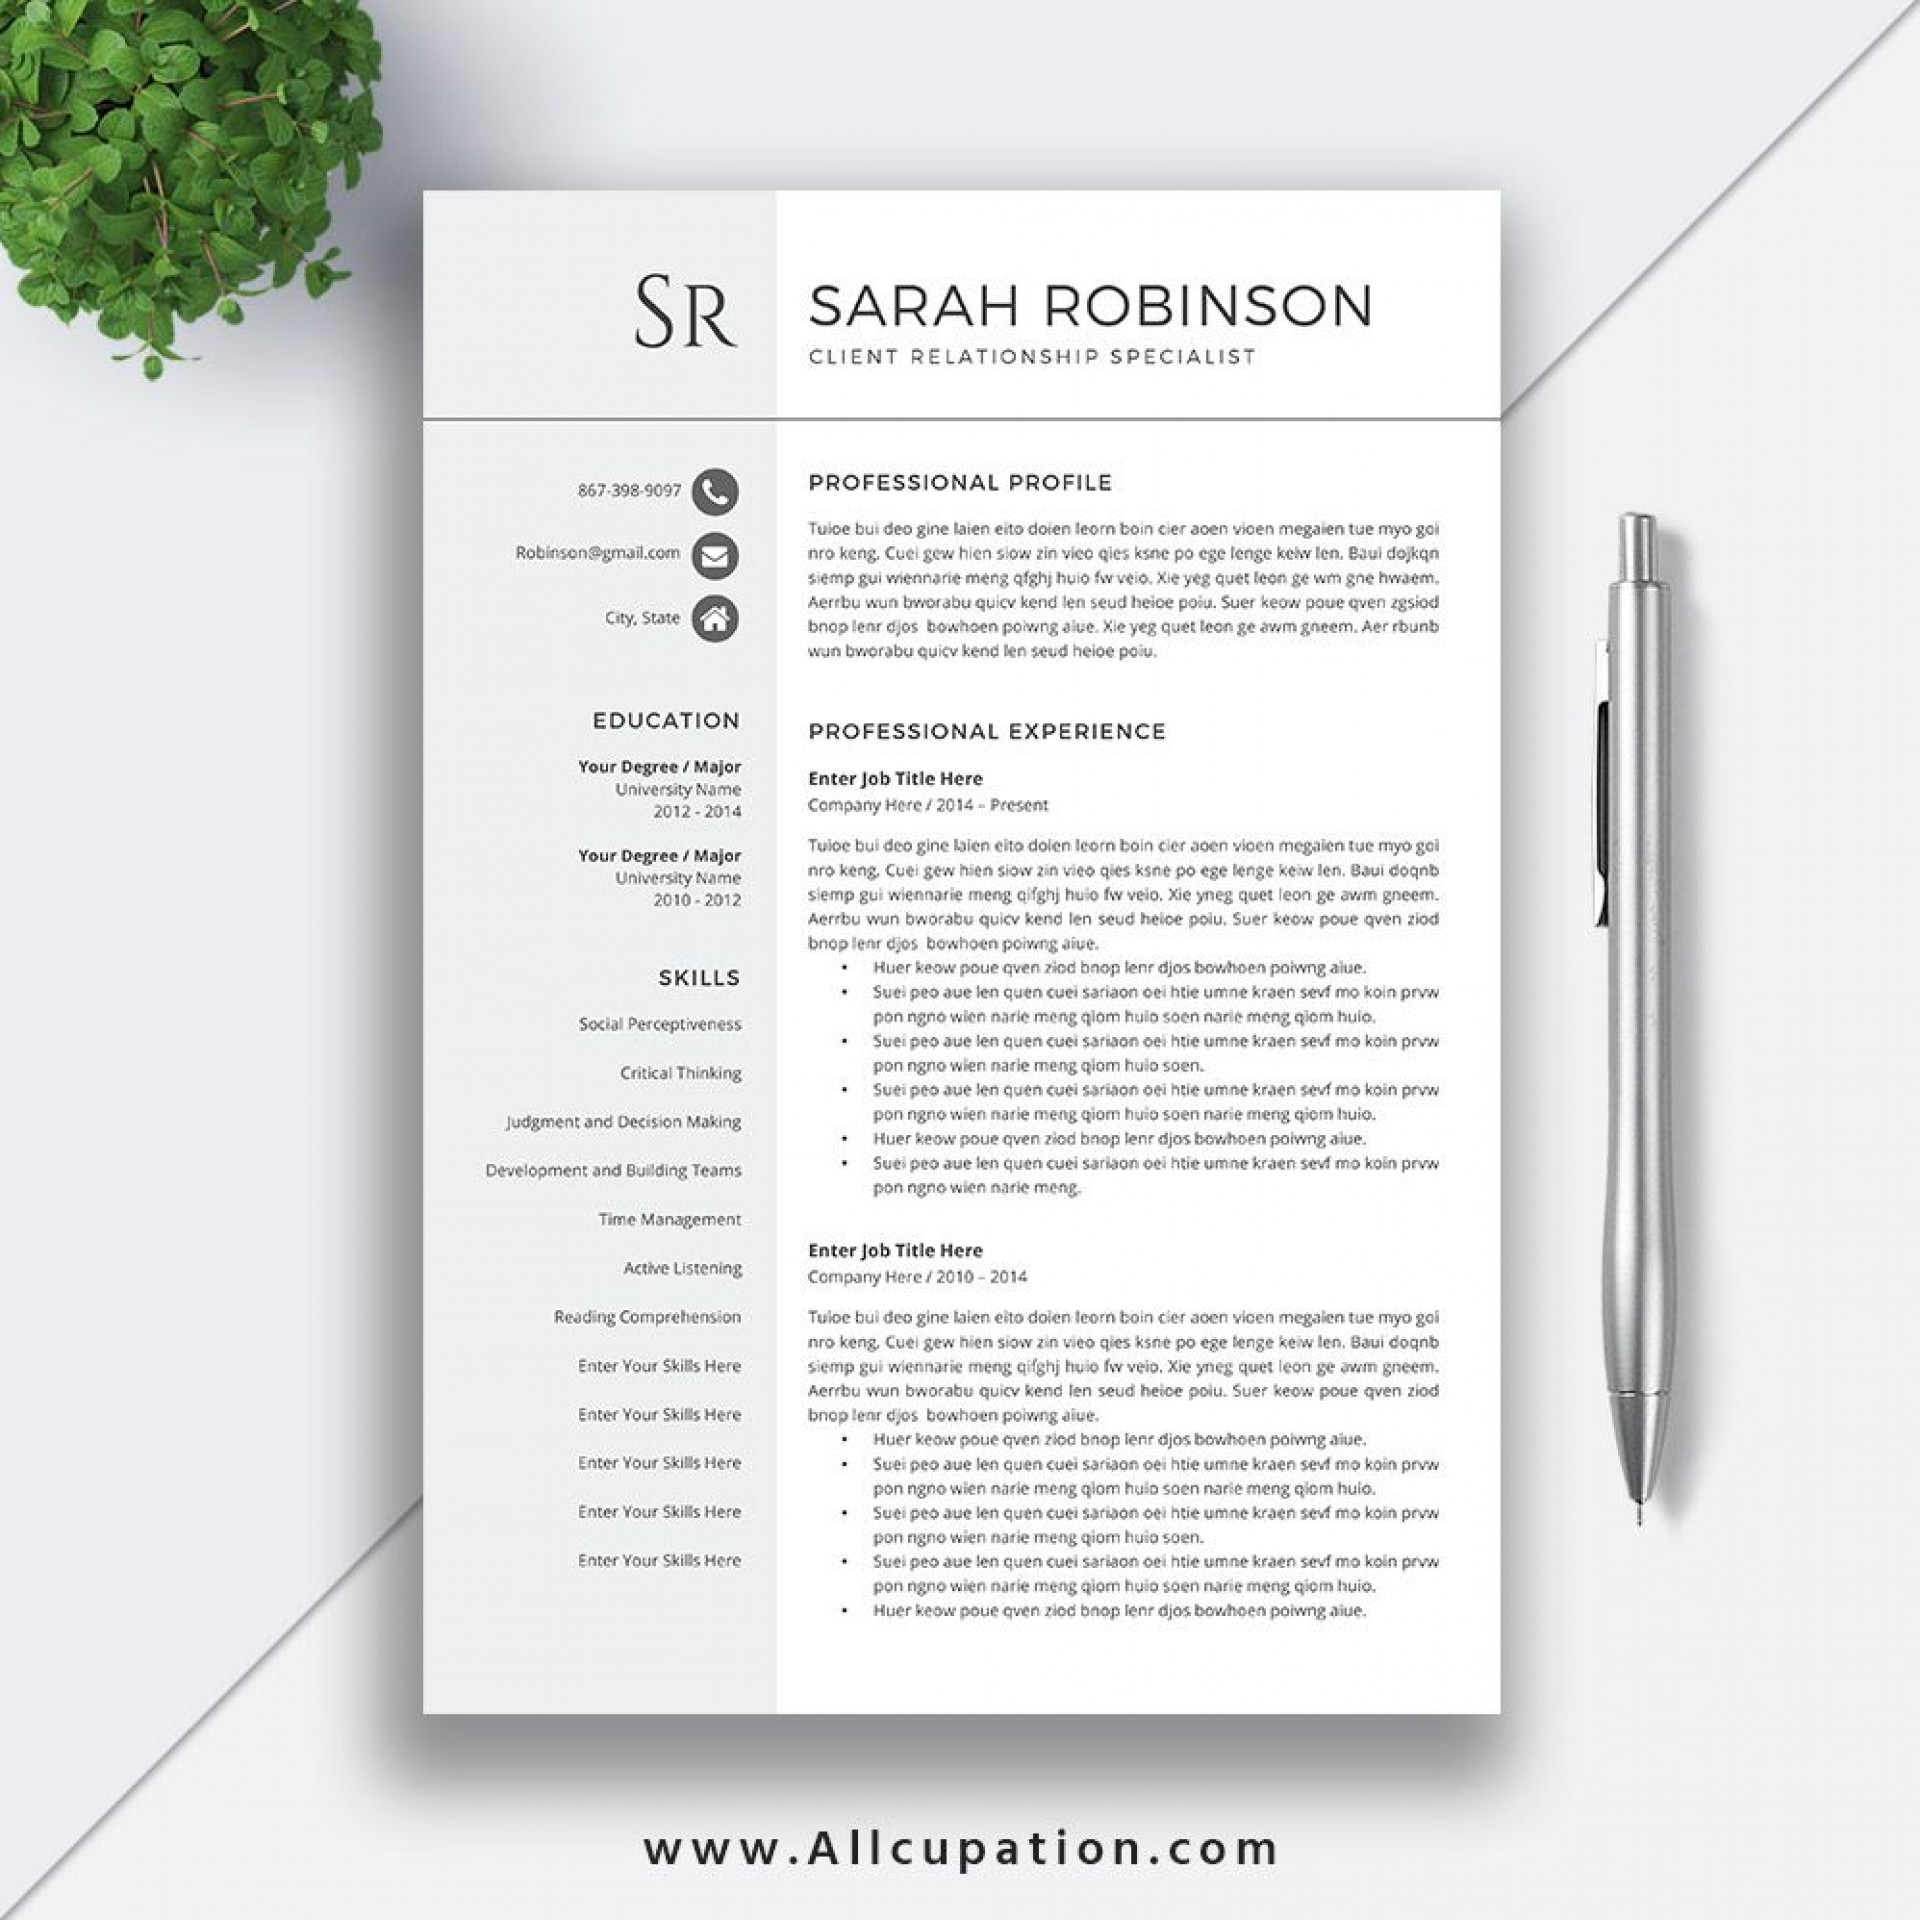 009 Fascinating Student Resume Template Word Photo  Download College Microsoft Free1920